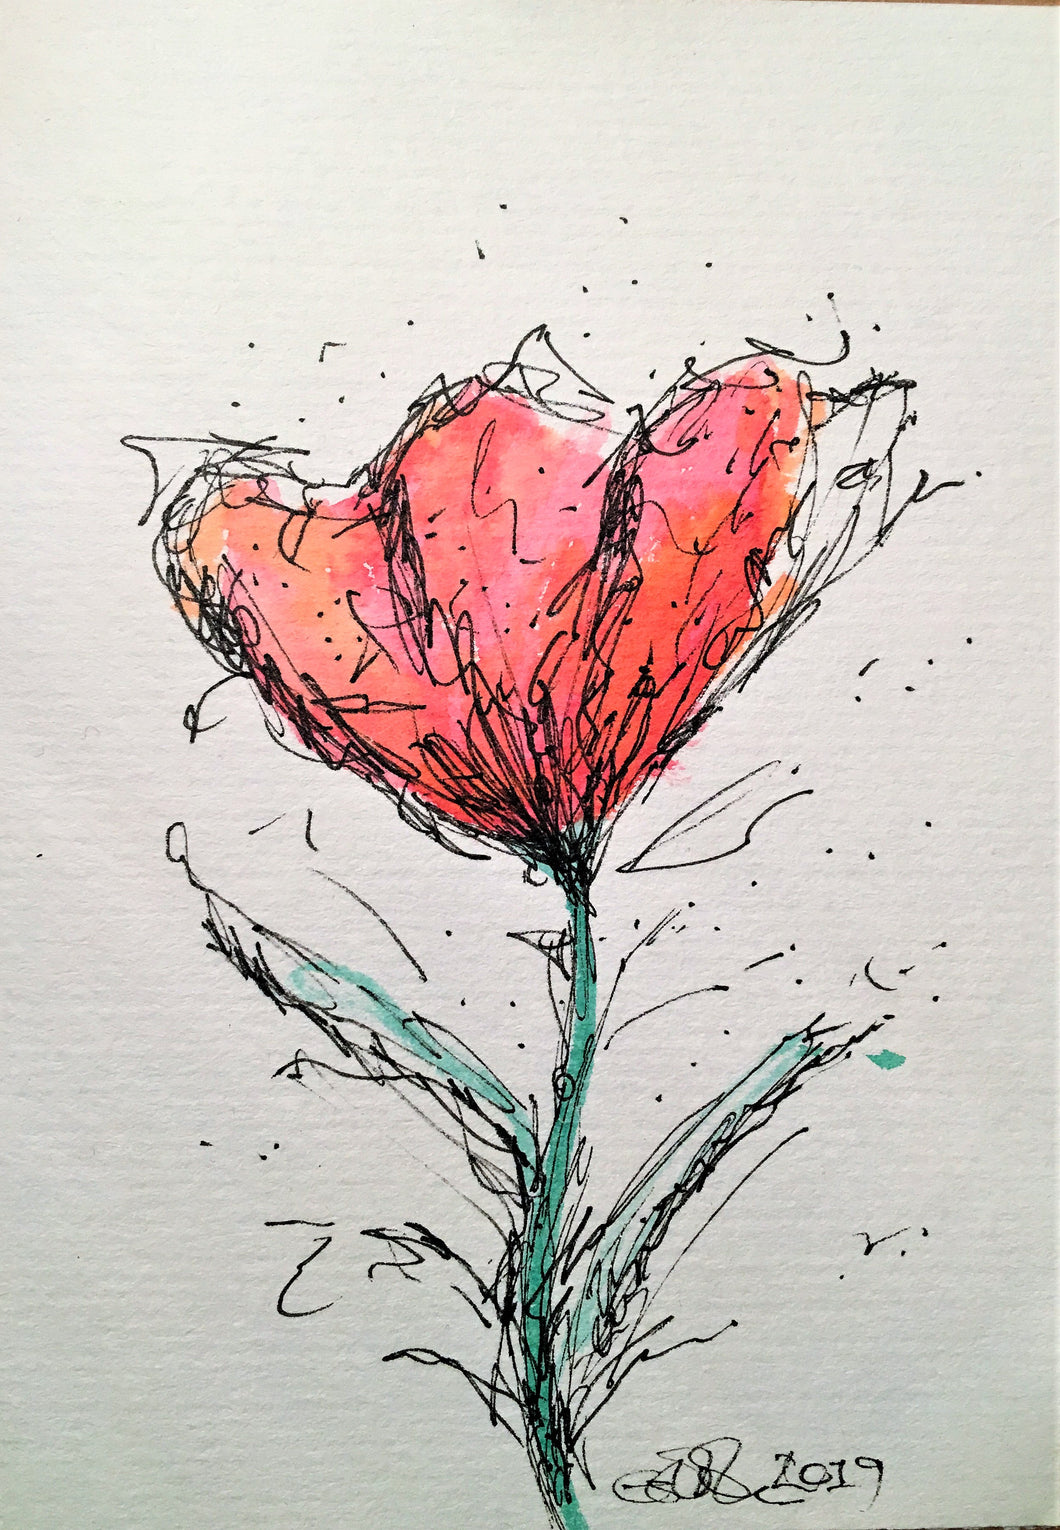 Handpainted Watercolour Greeting Card - Abstract Red/Orange Poppy Flower - eDgE dEsiGn London